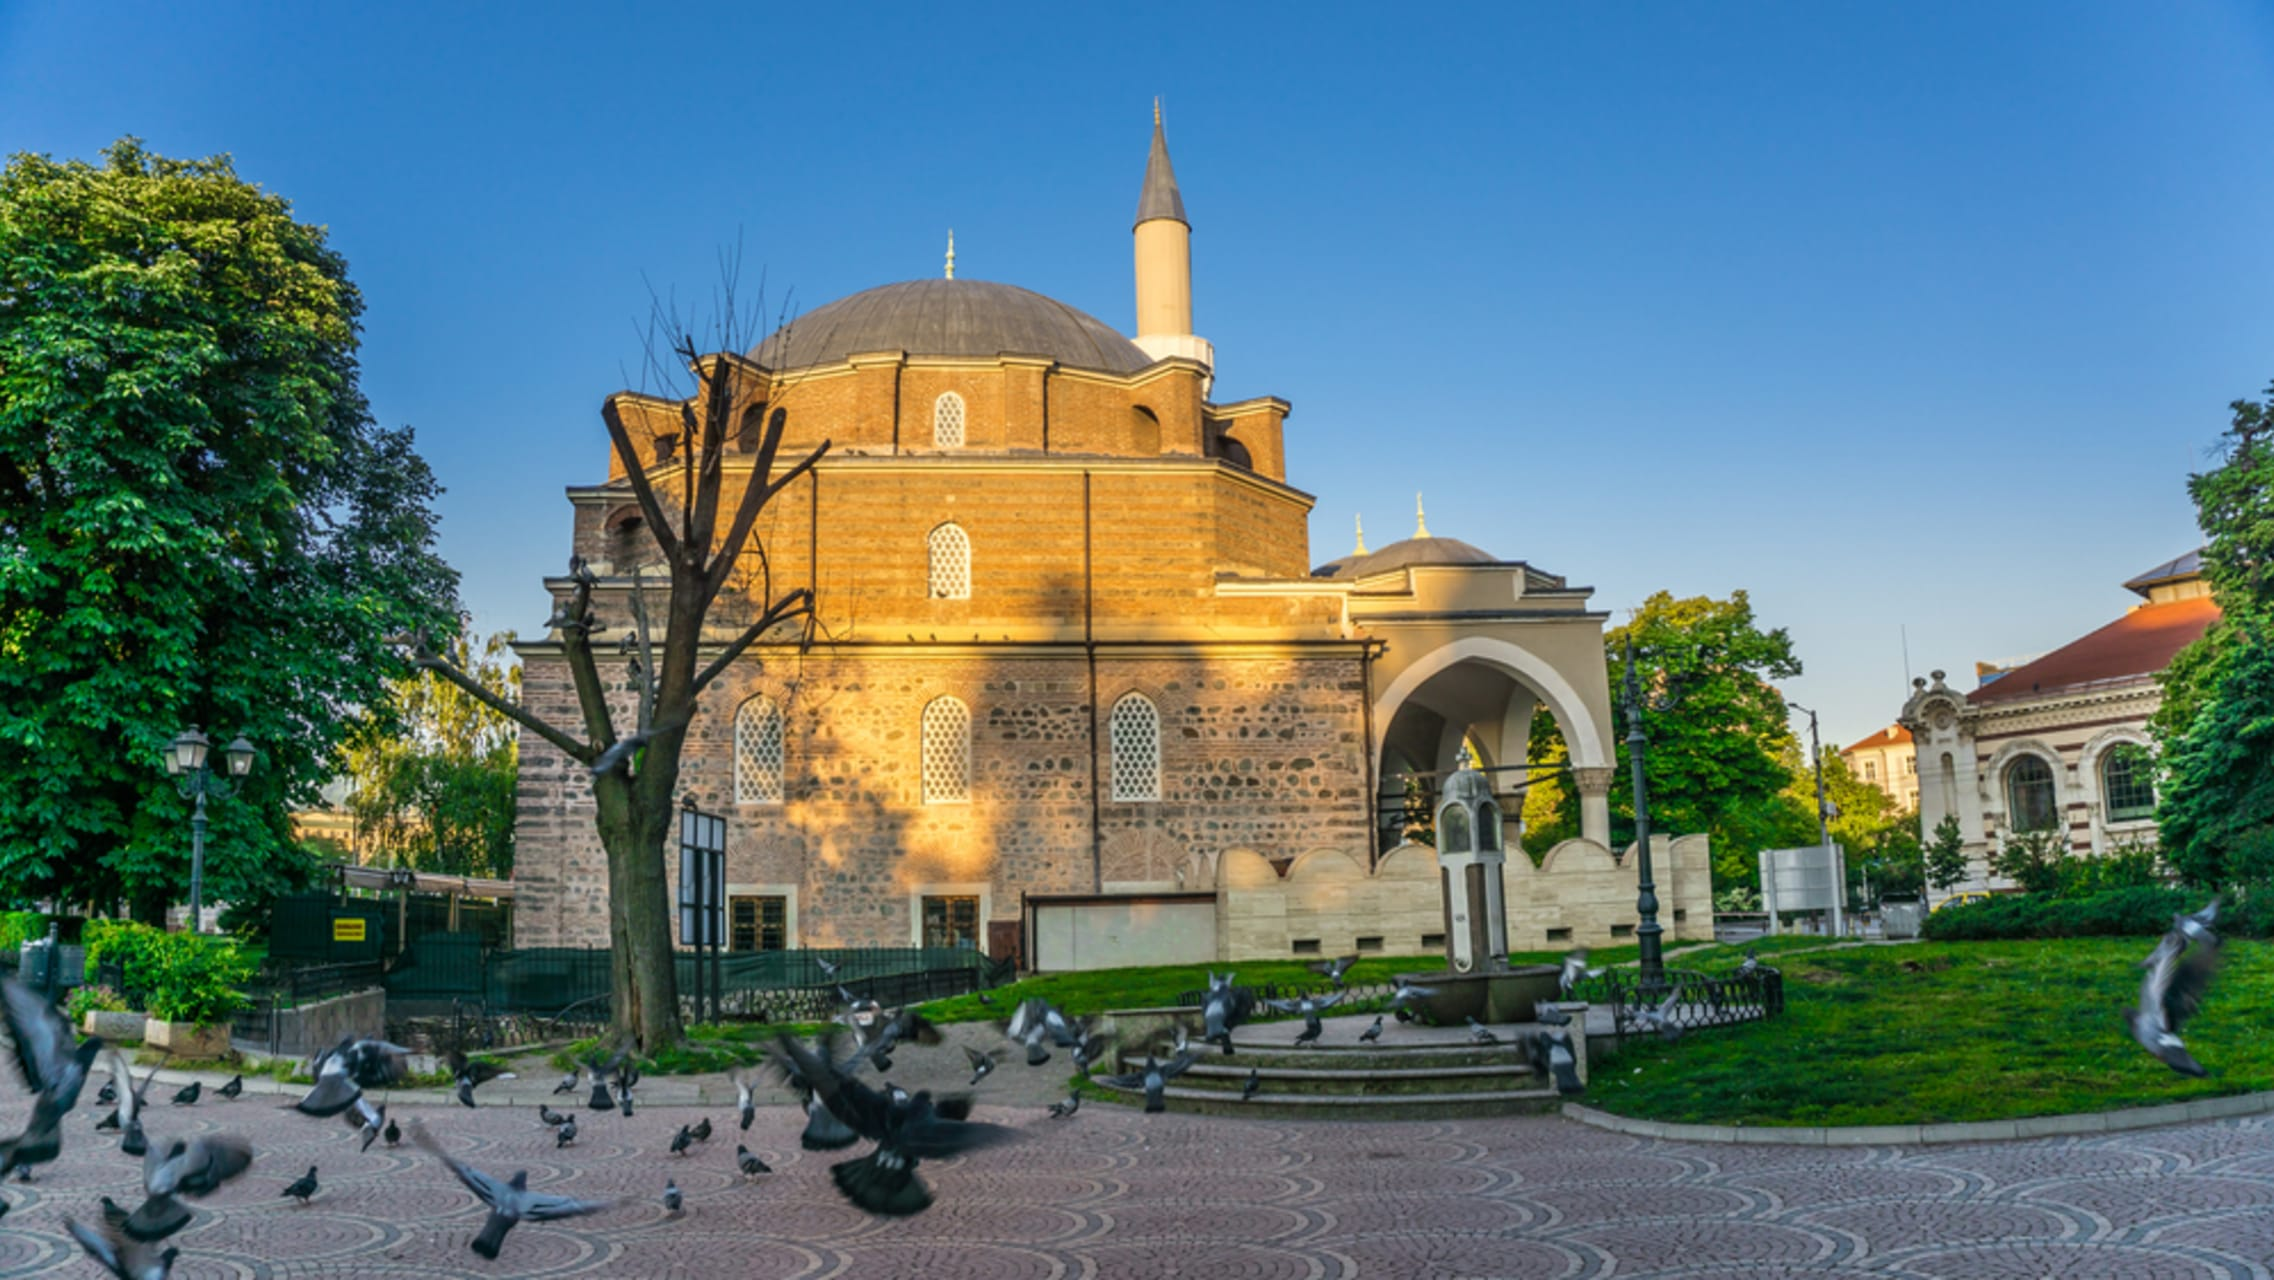 Sofia - Can Religions Co-Exist?